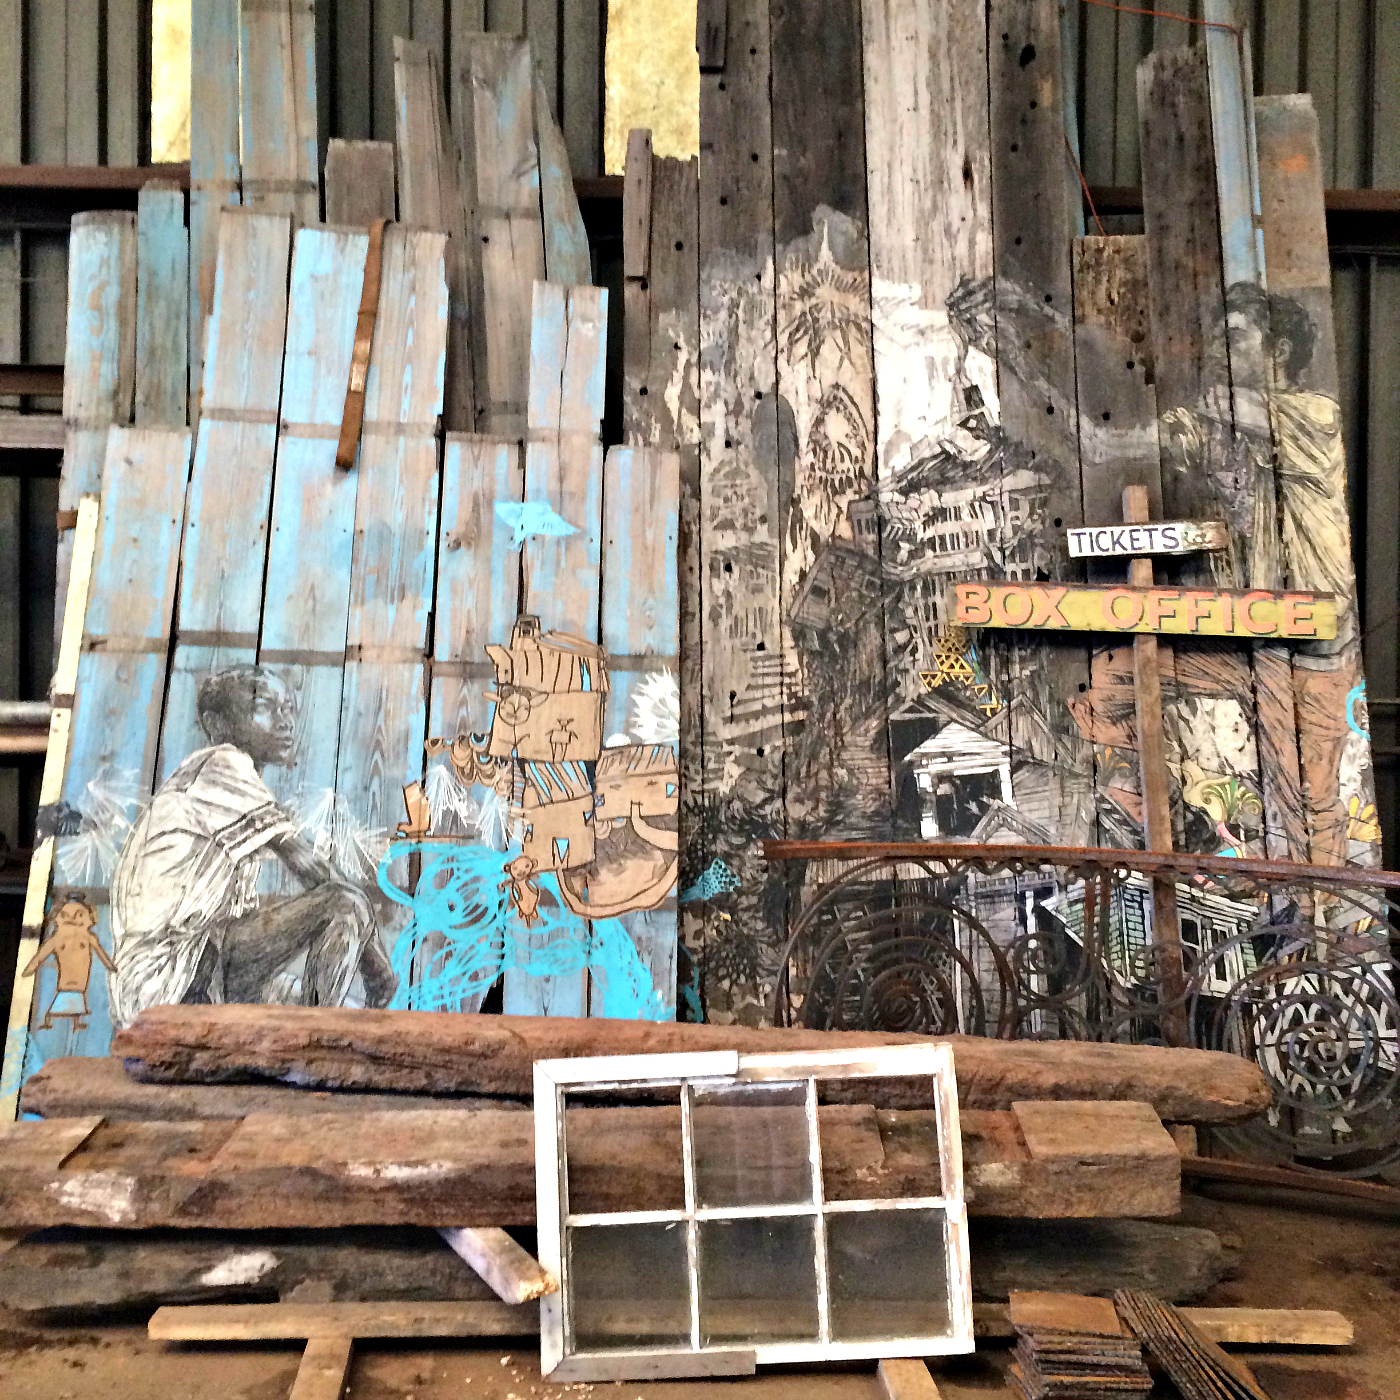 Fence by Swoon awaiting installation at the new permanent home of the Music Box by New Orleans Airlift (all photos by the author for Hyperallergic unless noted)